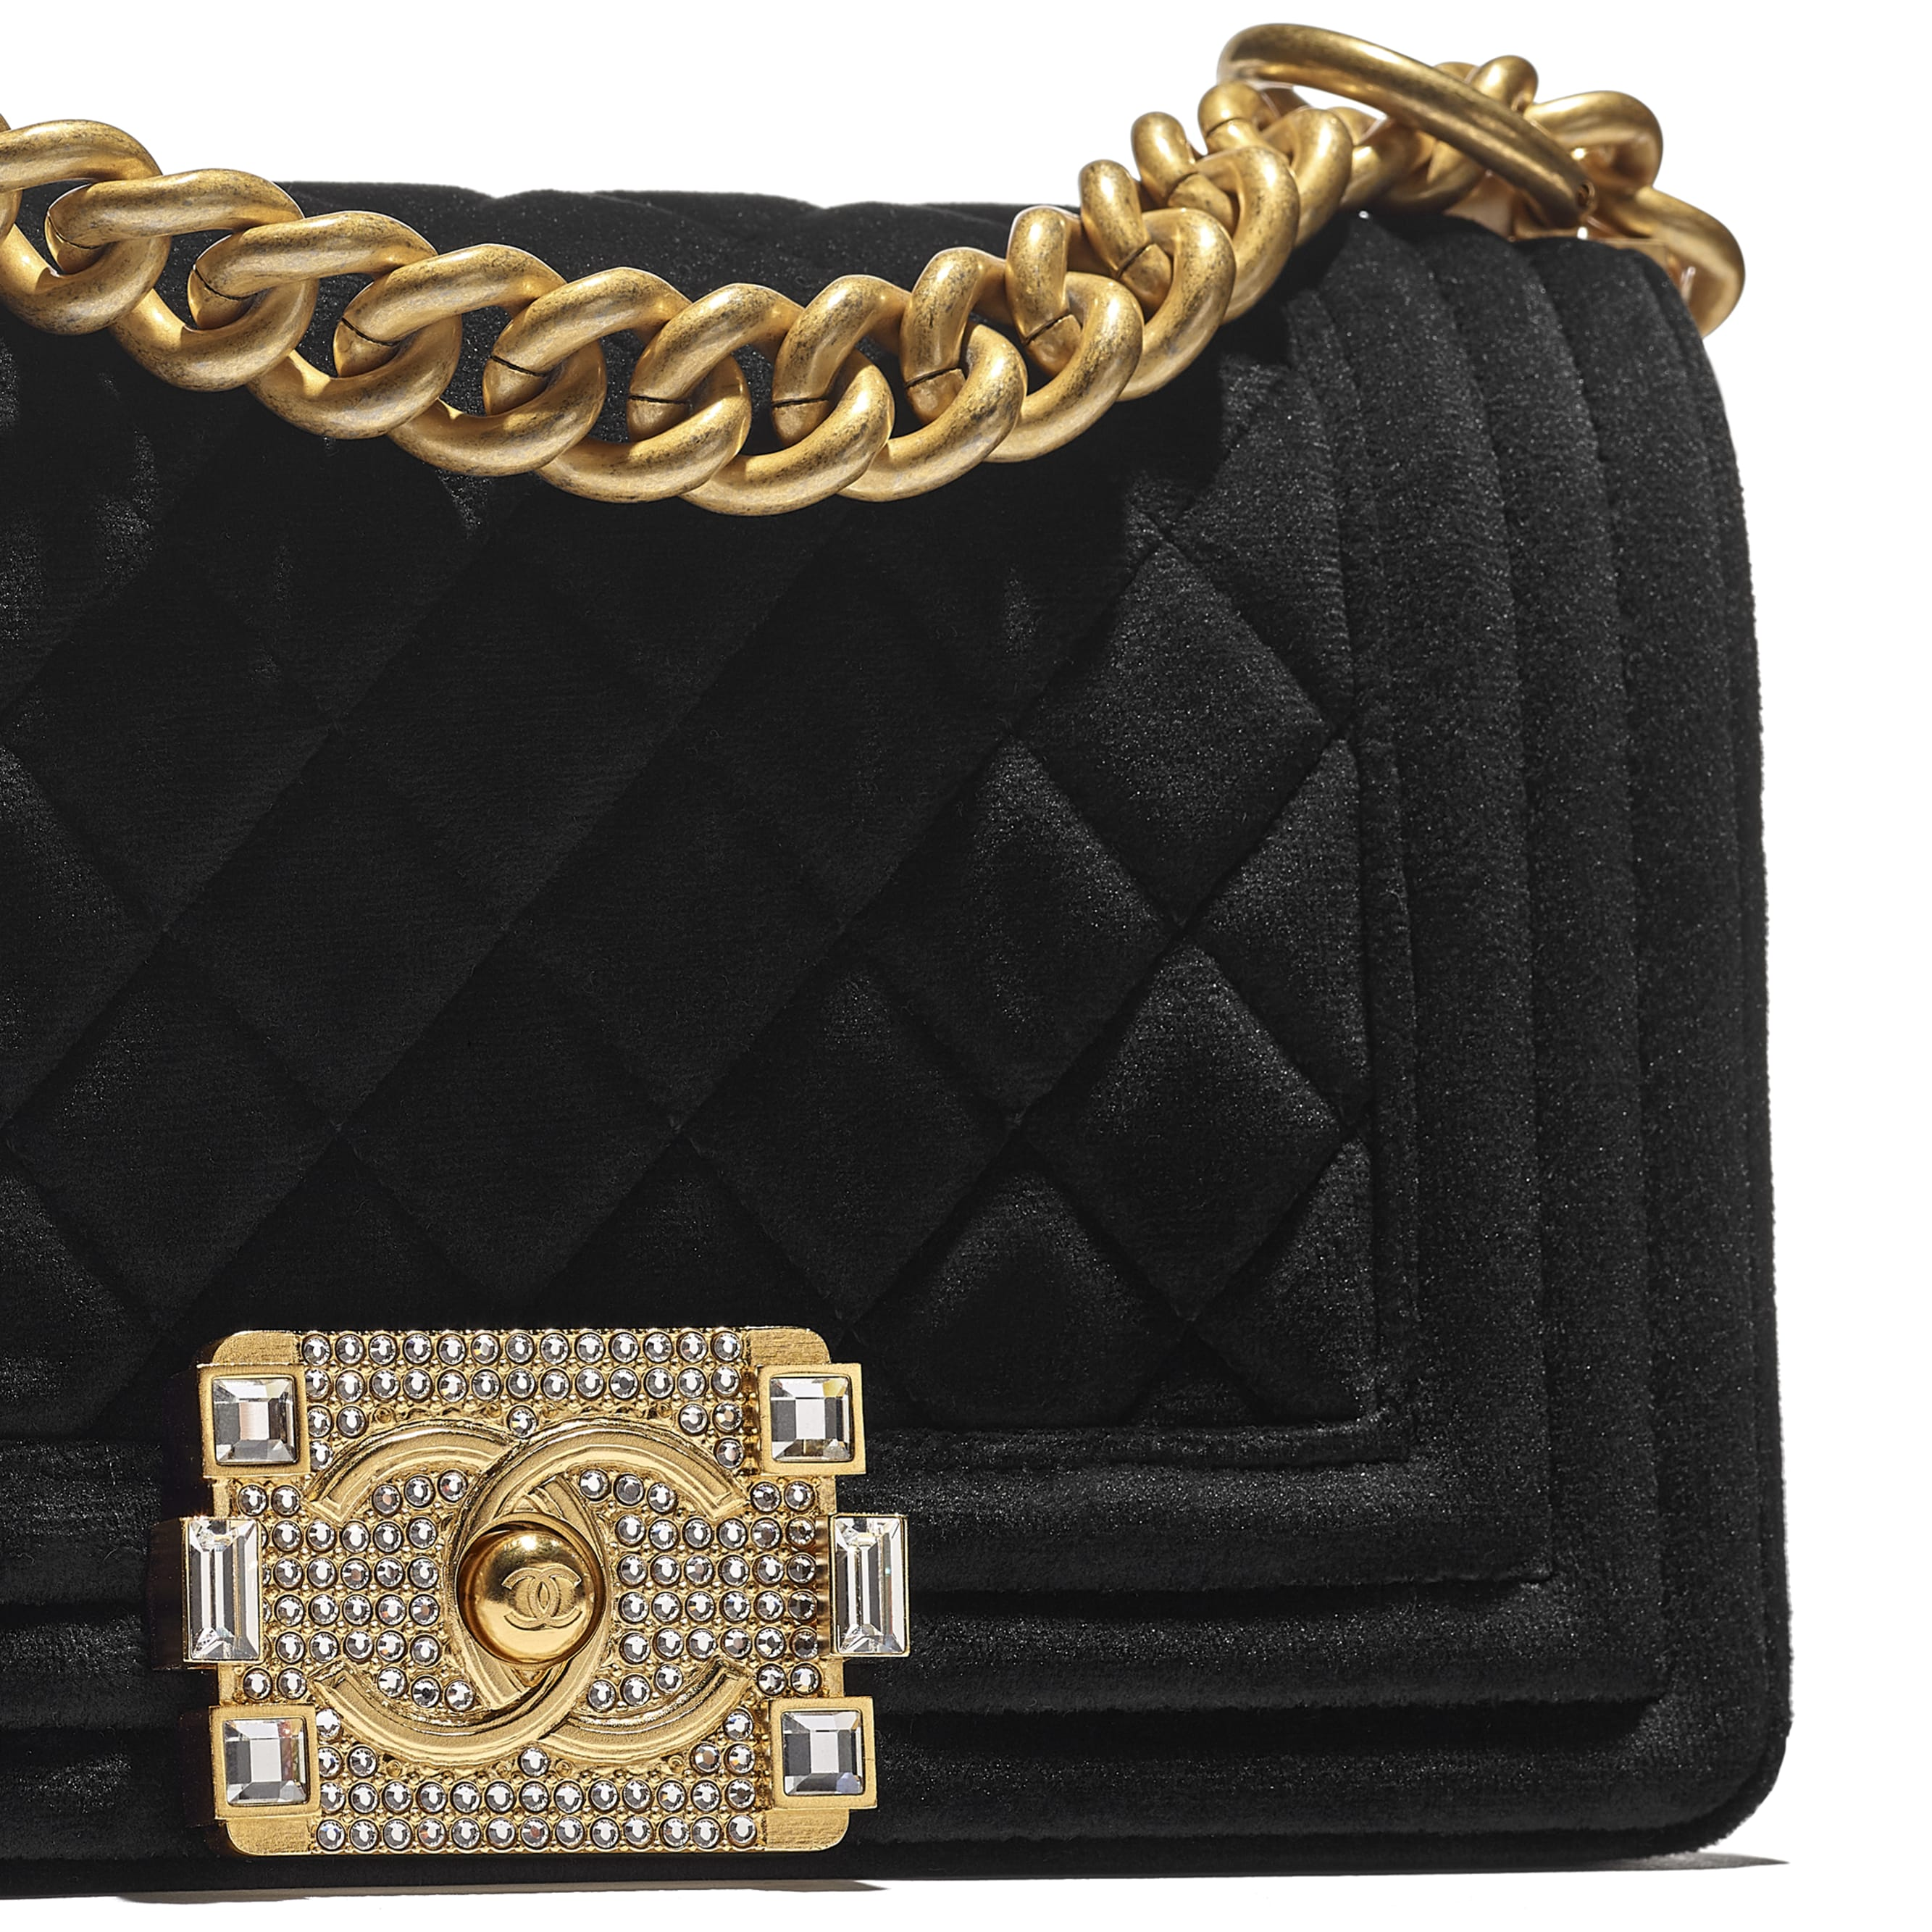 Small BOY CHANEL Handbag - Black - Velvet & Gold Metal - CHANEL - Extra view - see standard sized version